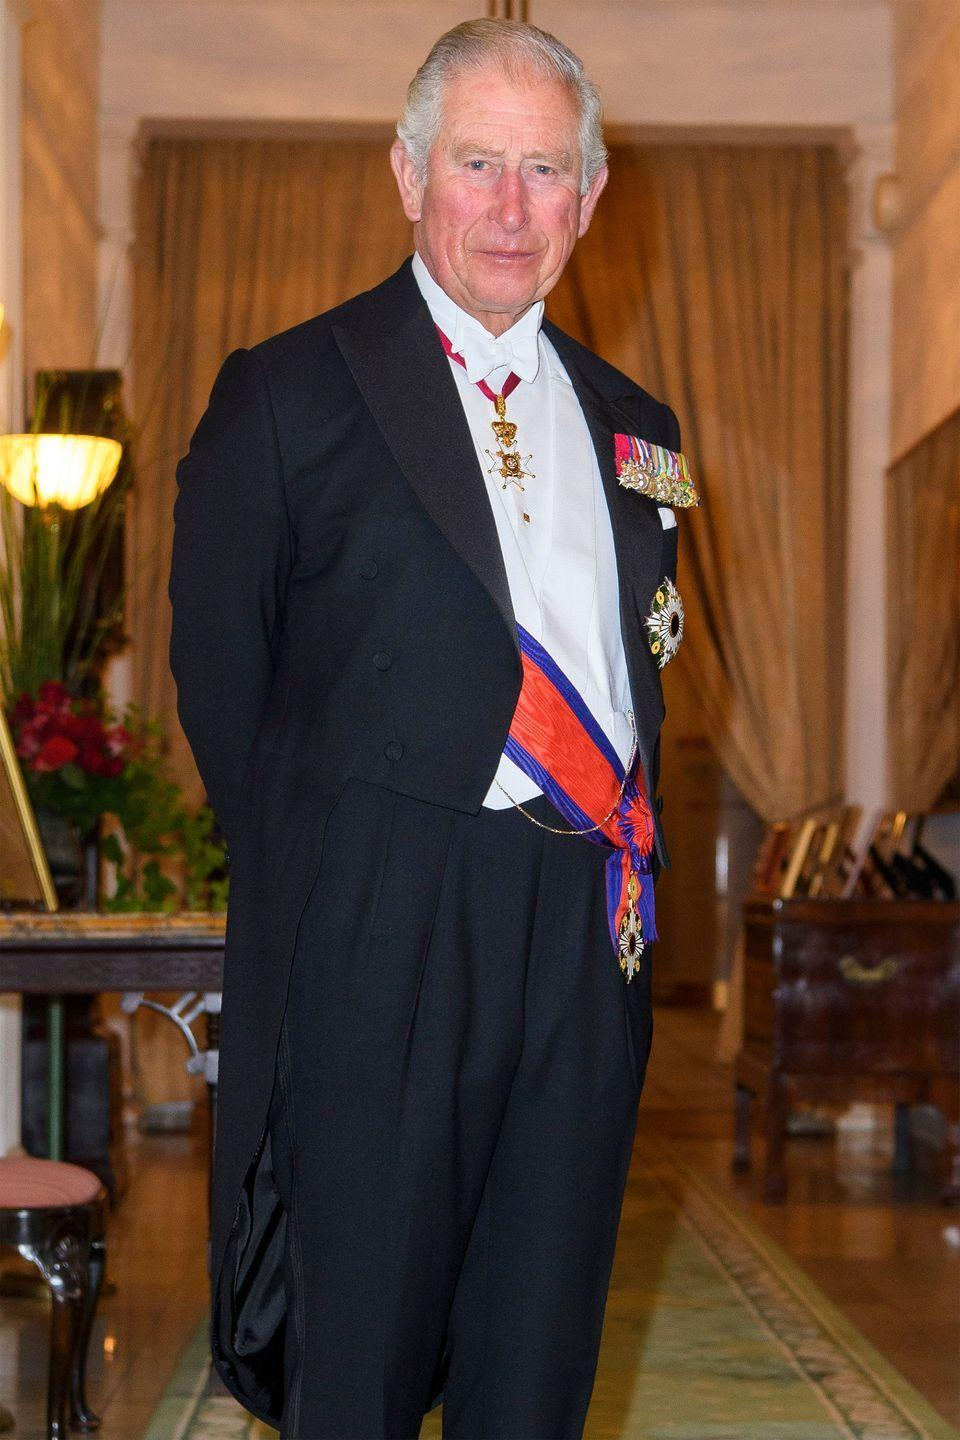 <p>Prince Charles poses for a photo at the British Embassy in Tokyo, Japan.</p>